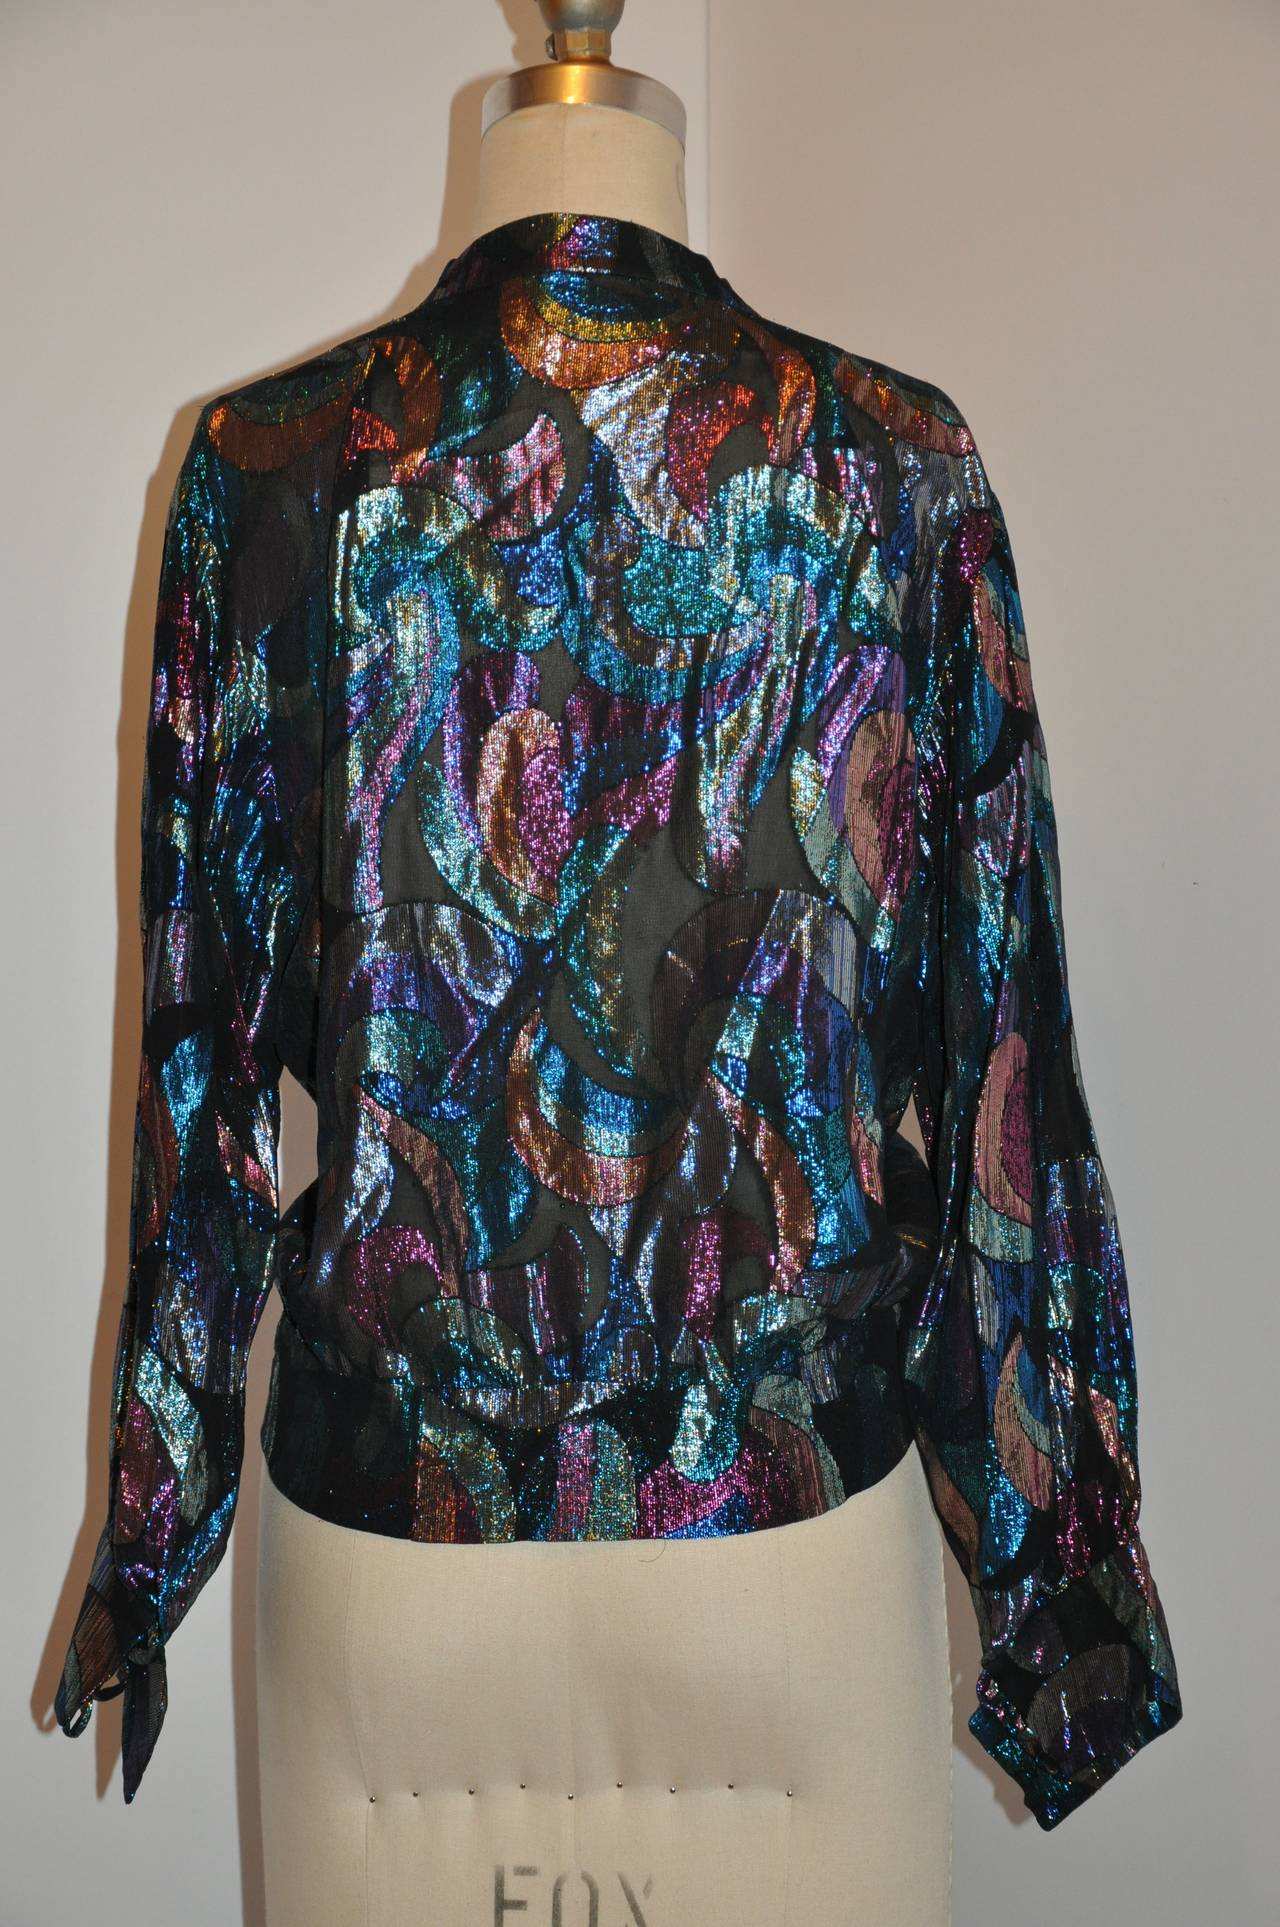 This wonderfully detailed combination of black silk chiffon blended with multi-colors of turquoise, red, tangerine, peach, silver and gold metallic threads makes for a wonderful evening top. feather-weight when wearing, the mandarin collar measures